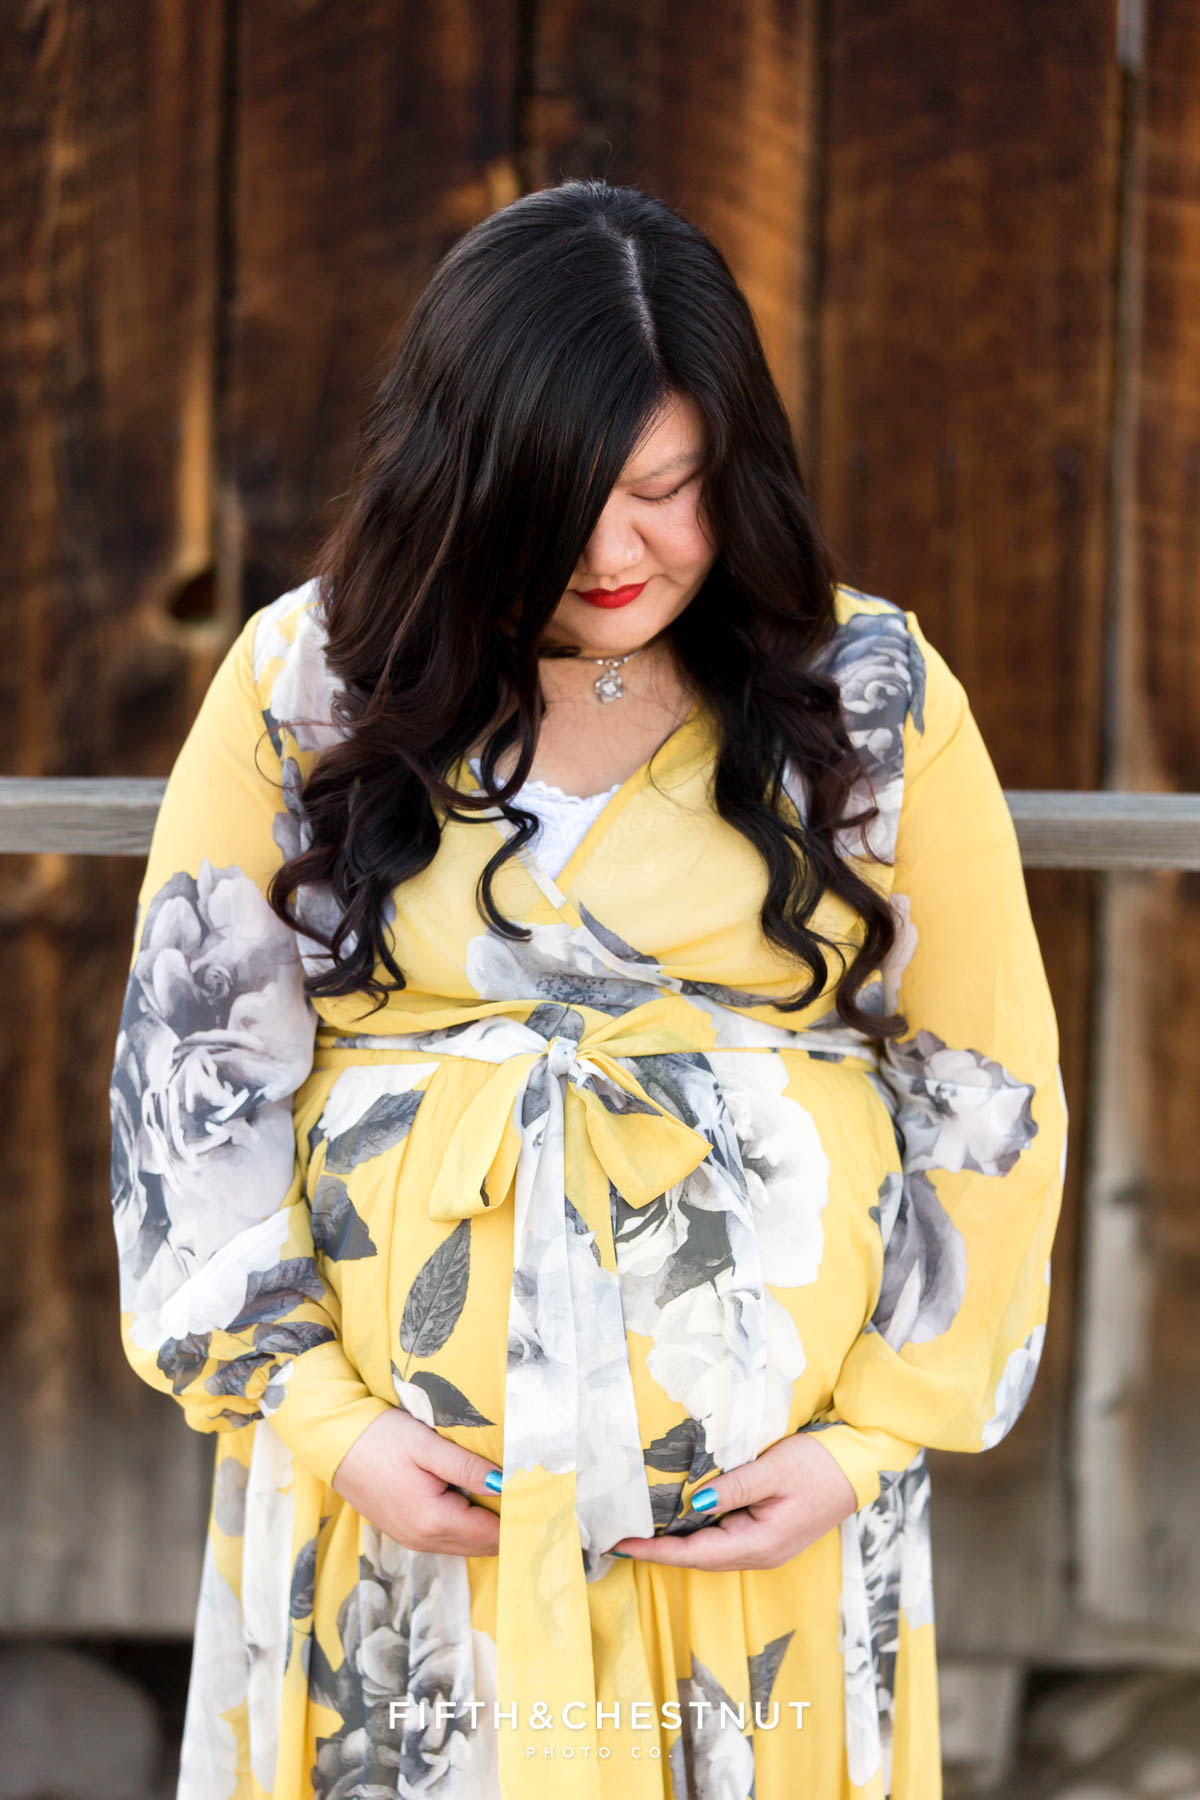 Pregnant woman in yellow and gray floral dress holds pregnant tummy while looking down surrounded by rustic western buildings in Reno, NV for maternity portraits by Reno Maternity Photographer